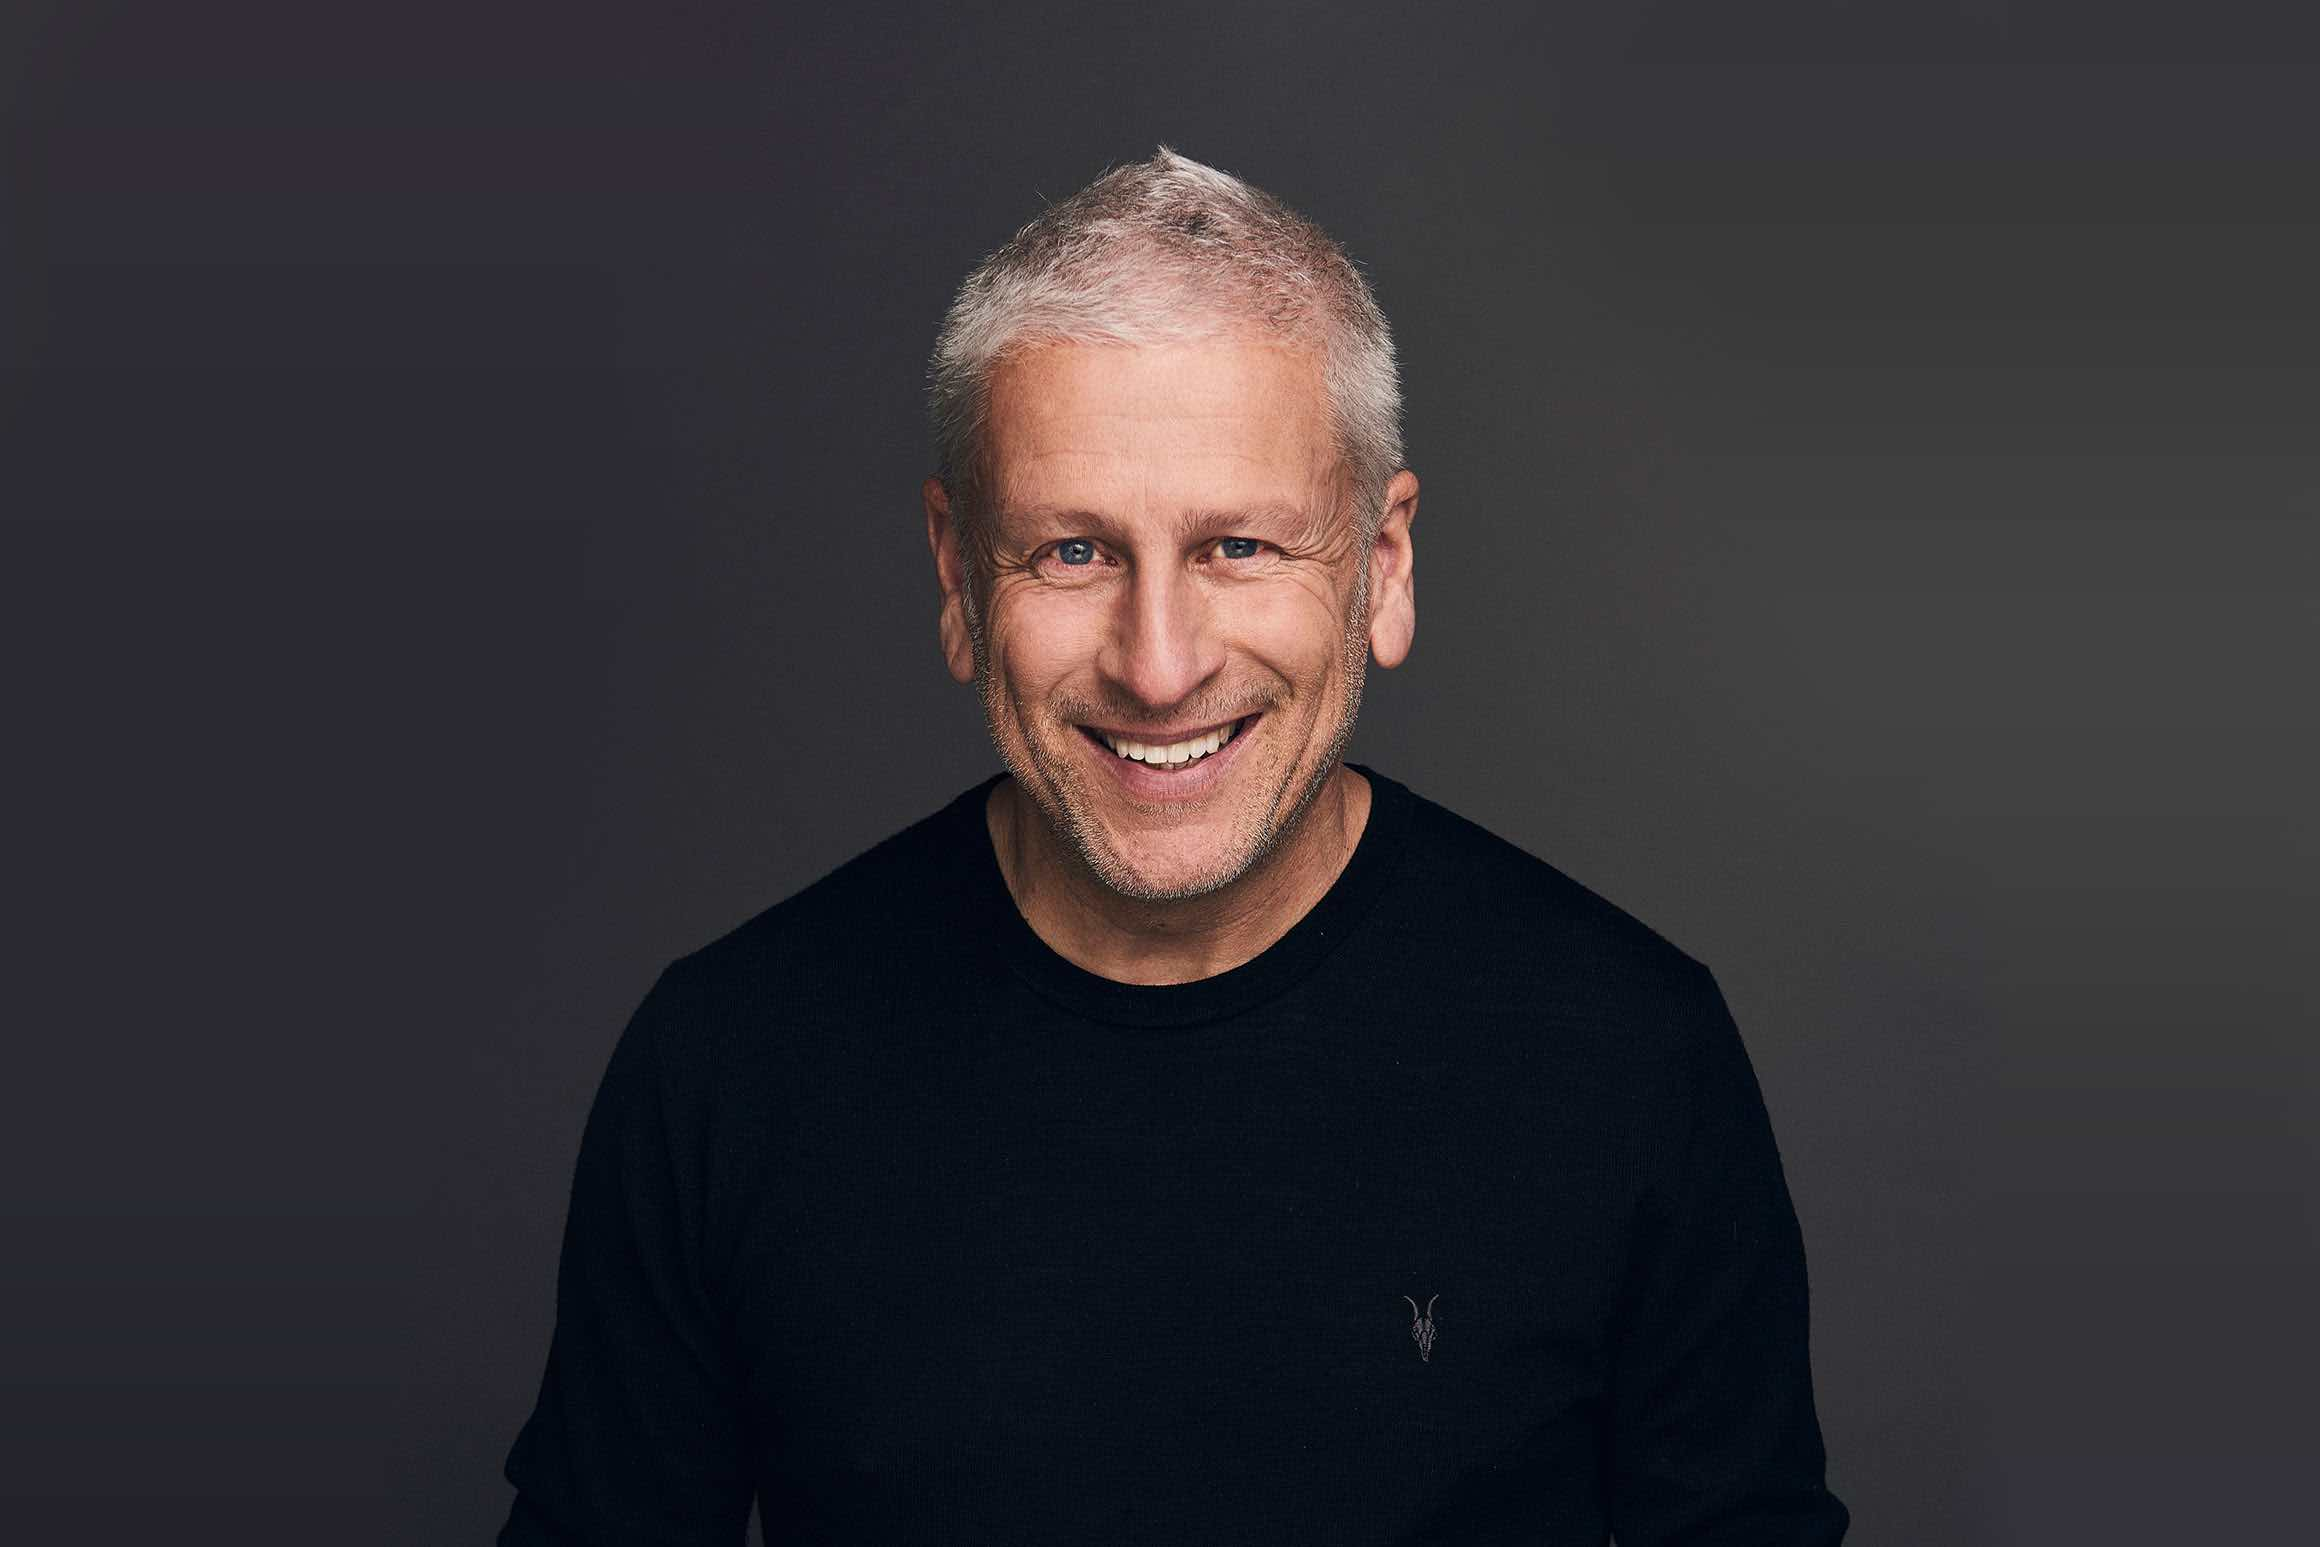 Pastor Louie Giglio Apologizes for Saying Slavery Was a 'Blessing' for White People and 'White Blessing' Should be Used Instead of 'White Privilege'